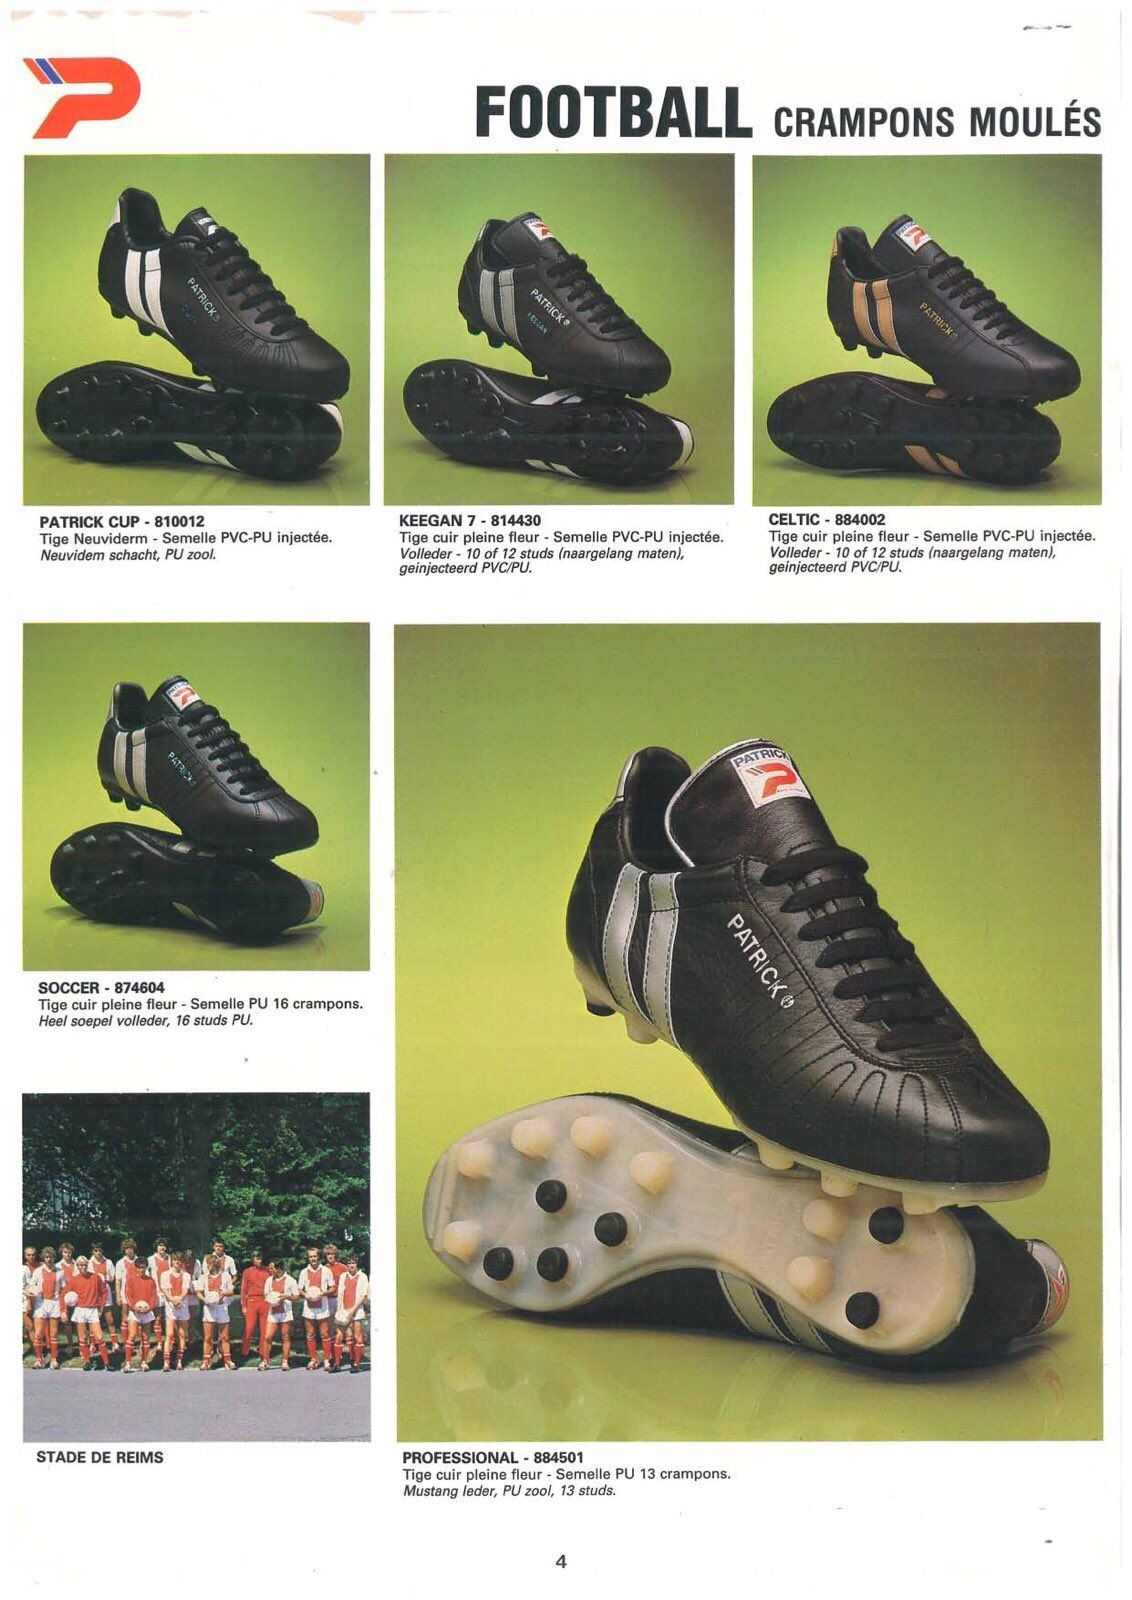 f7b0cb116 1983 Patrick Catalogue Pages Soccer Boots, Soccer Gear, Football Boots,  Soccer Cleats,